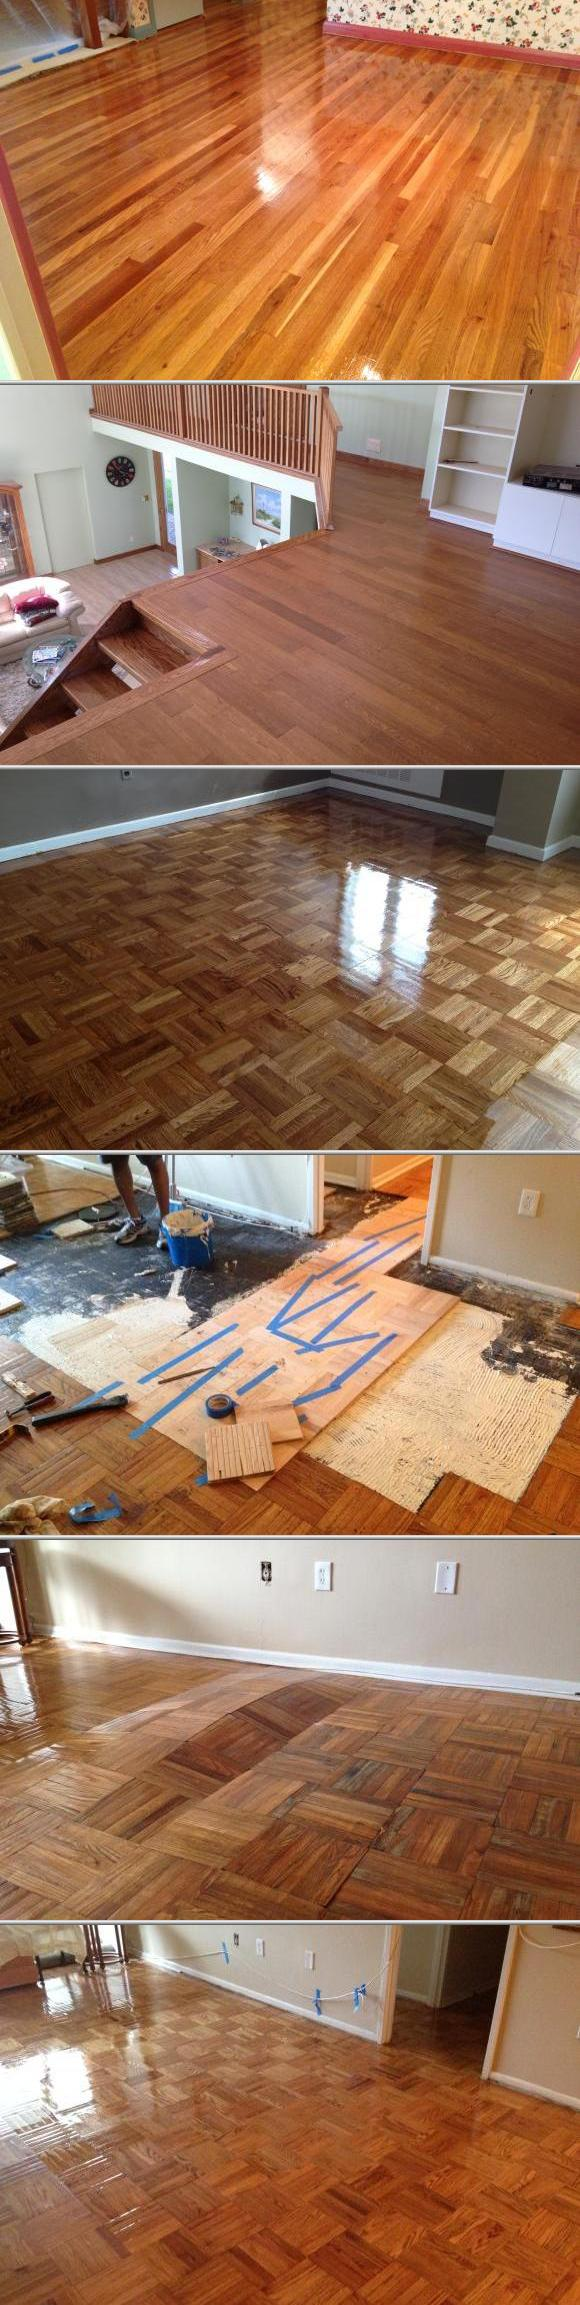 This company specializes in floor refinishing and